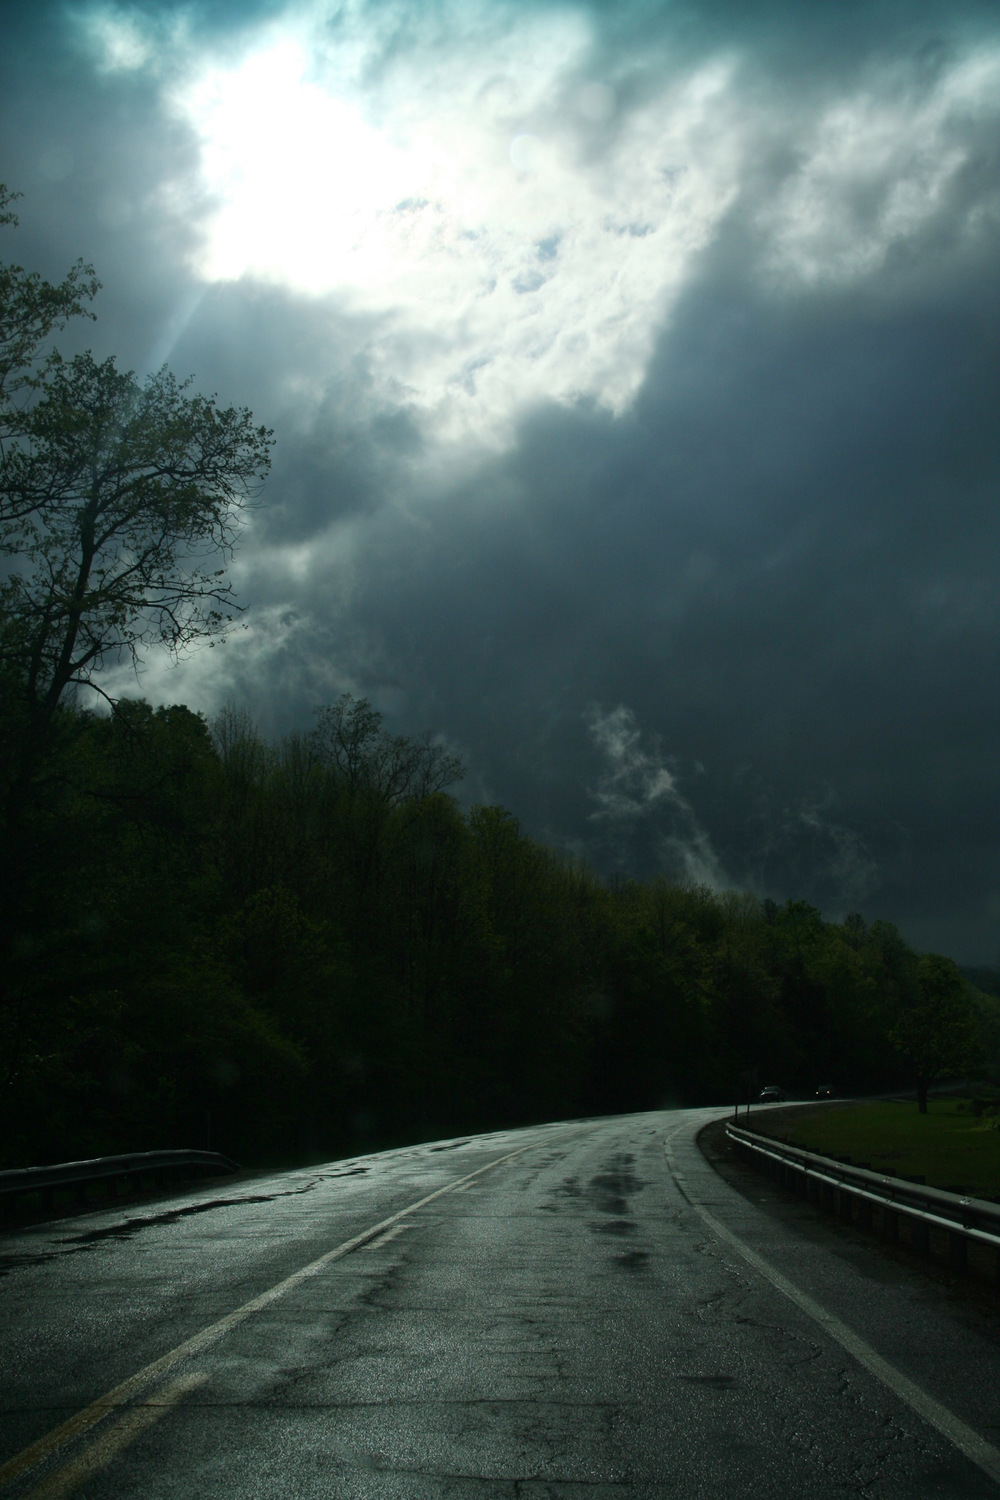 Road in Storm